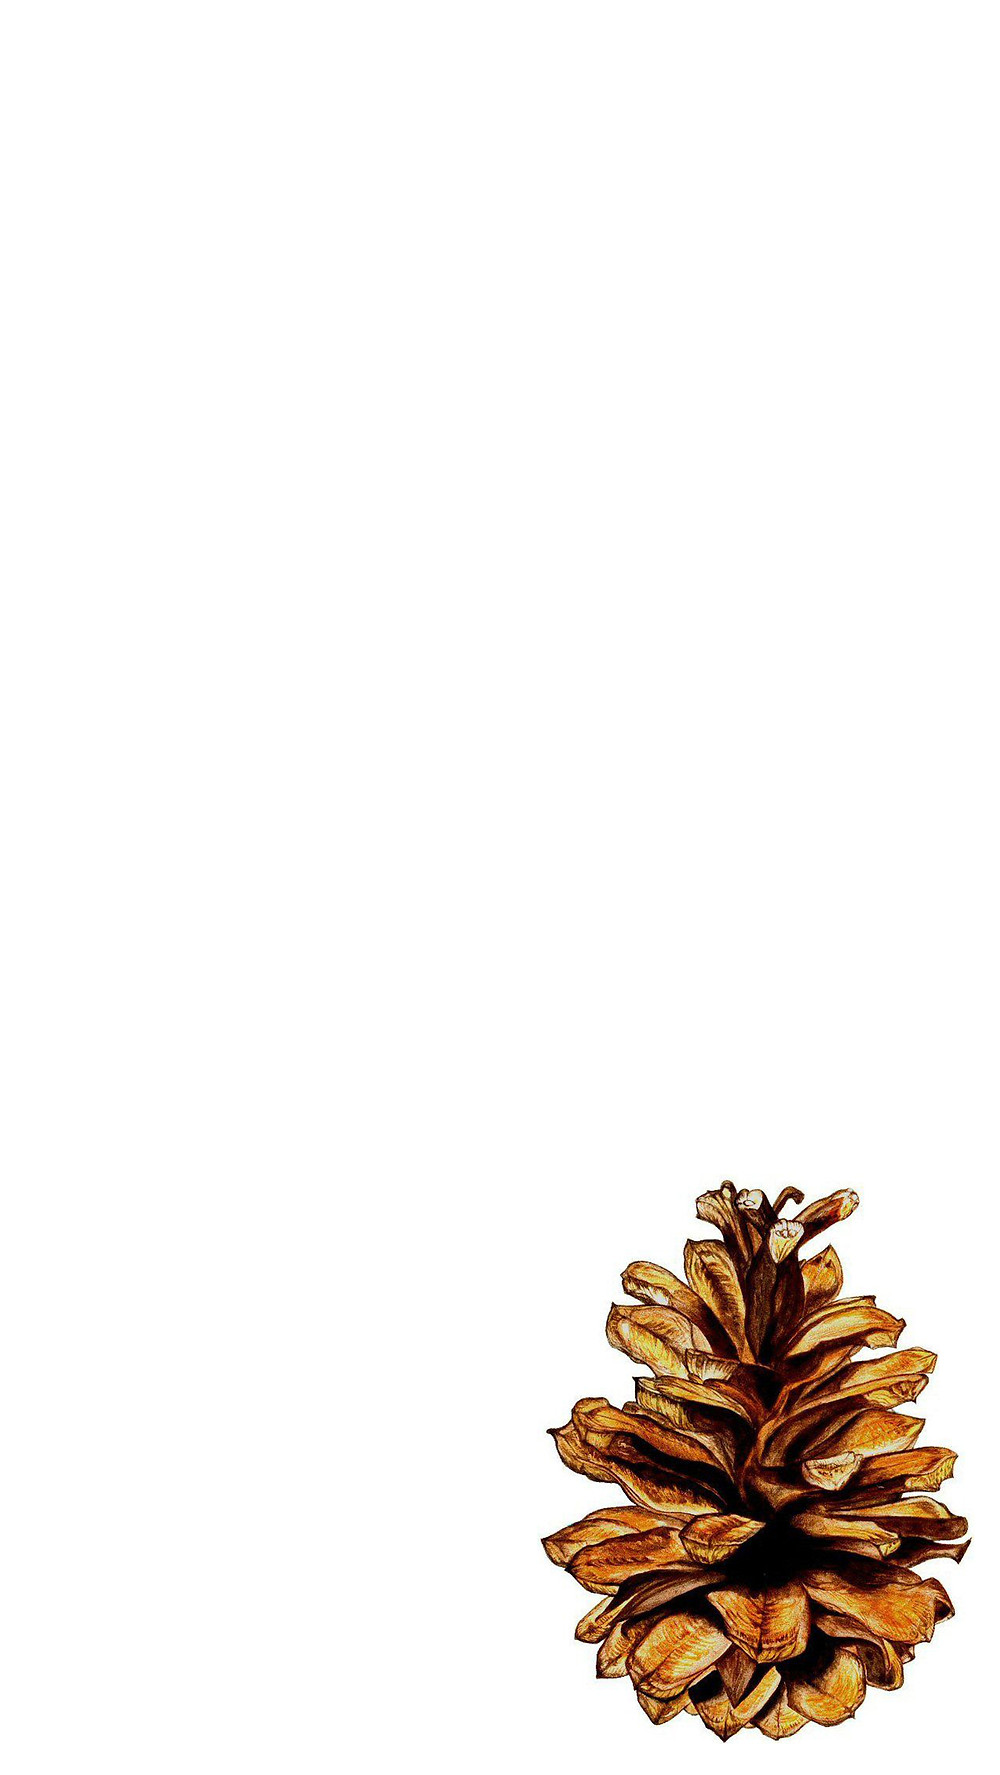 2017 Fall Autumn Phone Backgrounds - Fall Phone Wallpapers - pine cone watercolor background